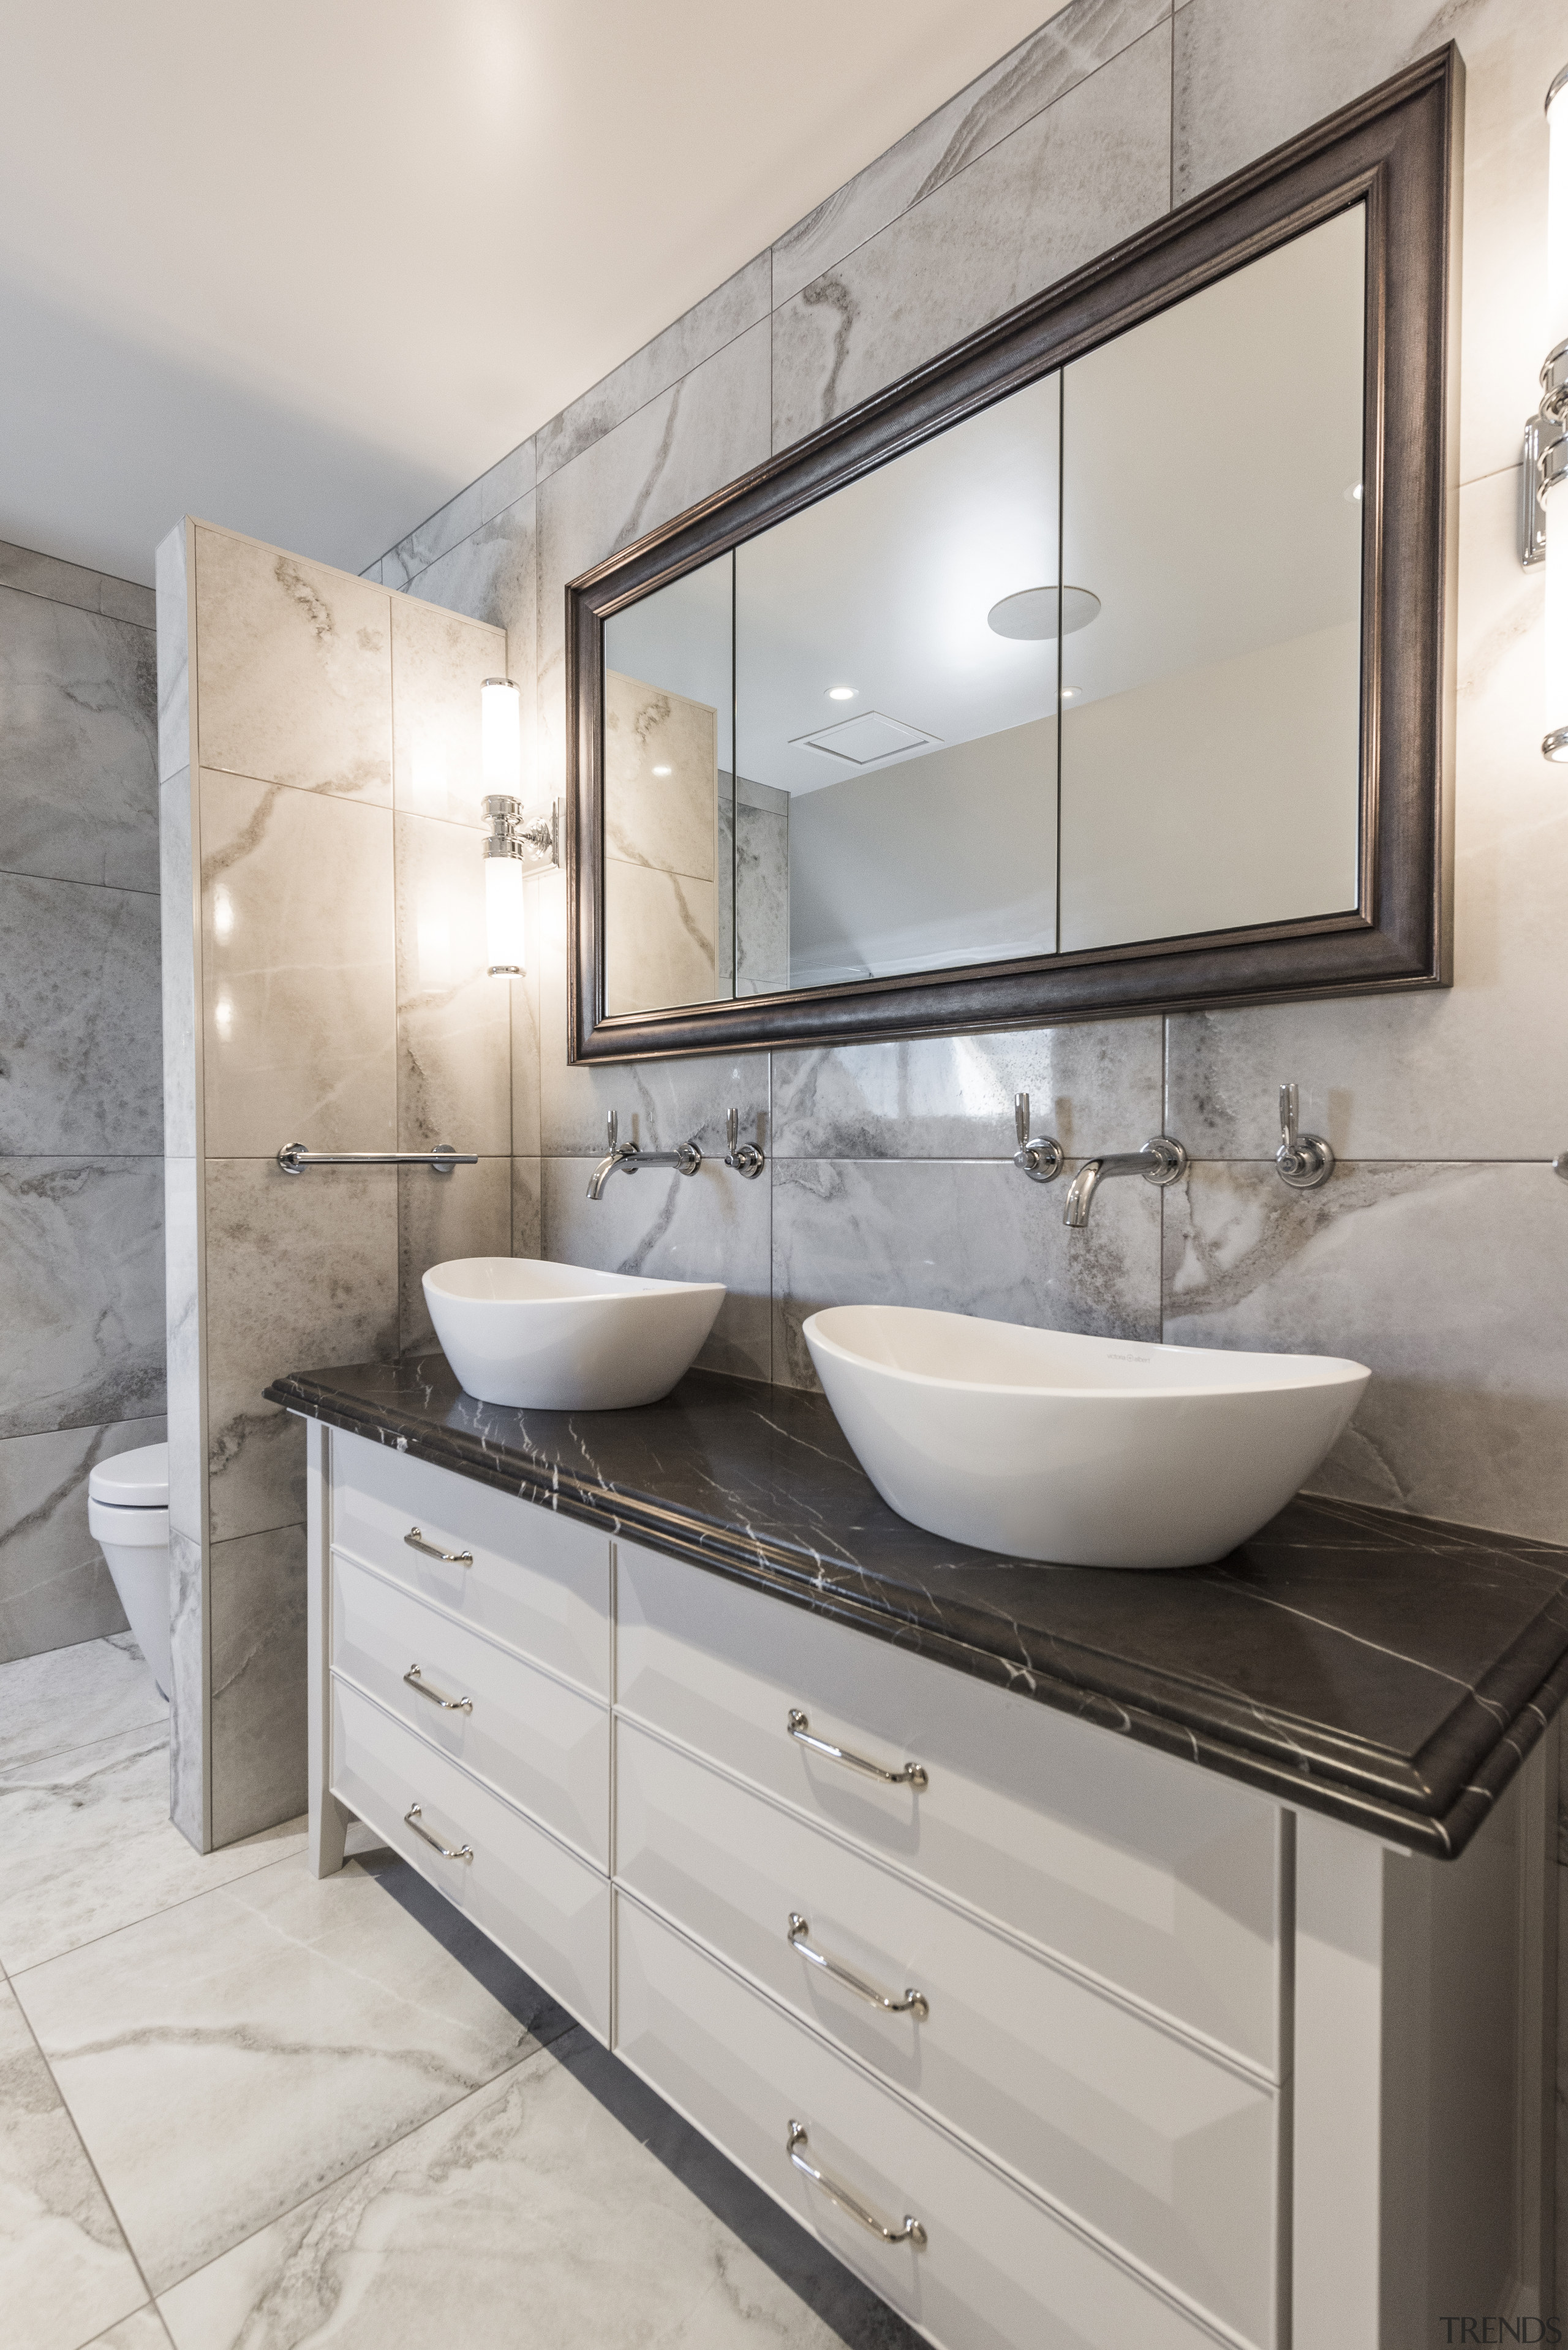 The natural stone vanity top provides a stunning architecture, bathroom, bathroom accessory, bathroom cabinet, building, cabinetry, ceiling, countertop, floor, flooring, furniture, home, house, interior design, marble, material property, plumbing fixture, property, real estate, room, sink, tap, tile, wall, gray